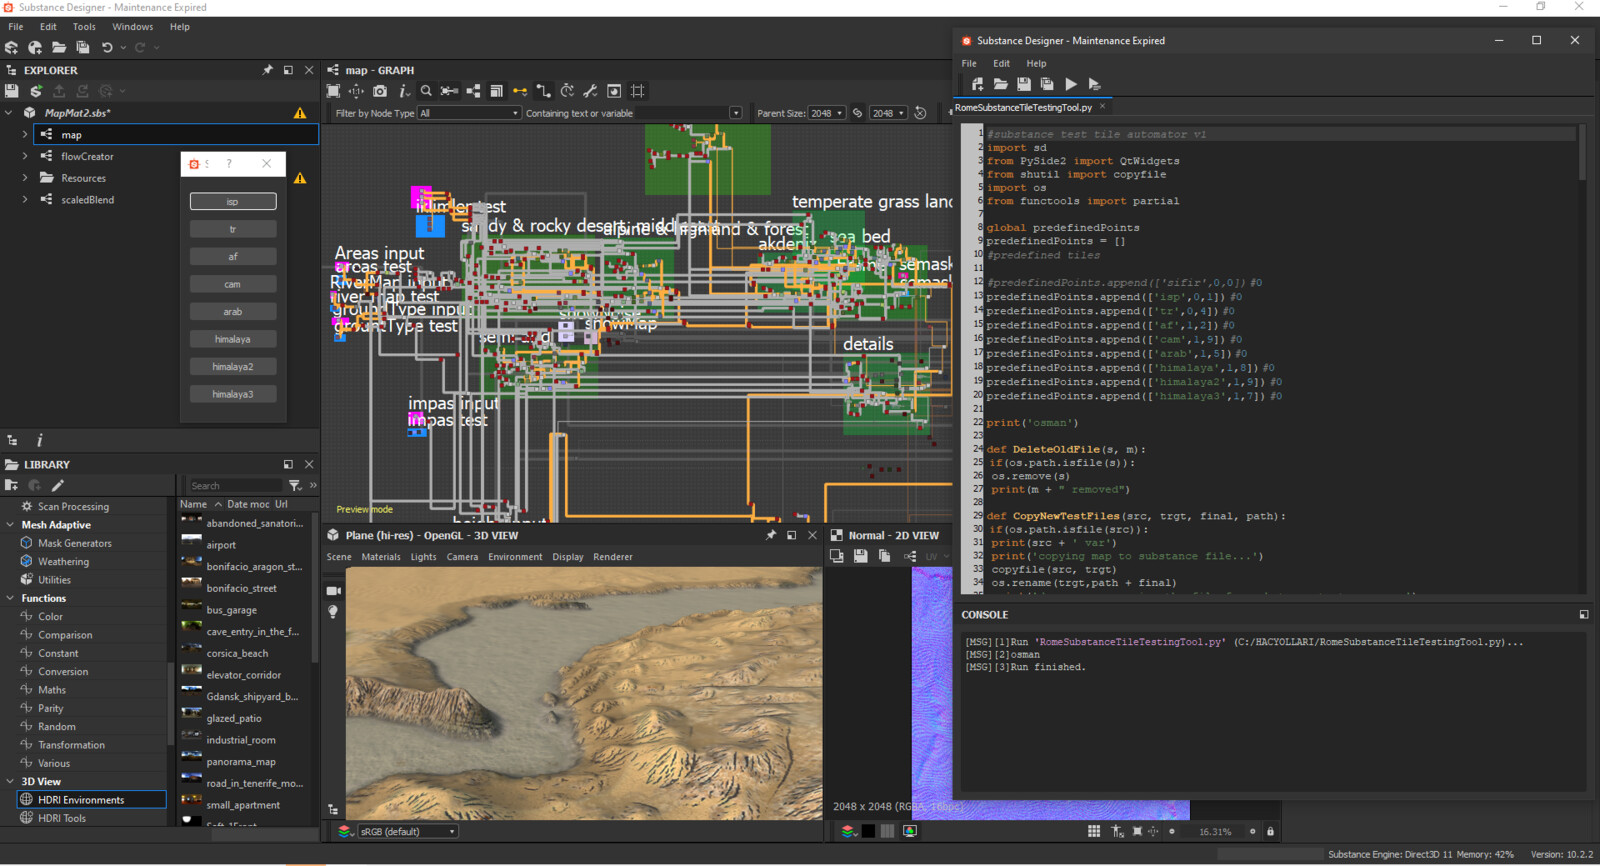 The most difficult part of the project was rendering 8k textures in the Substance designer for  over 100 grids on the game map. Of course, This had to be automated. Kıvanc Cubukcu developed an amazing system that does this in Substance's python language.